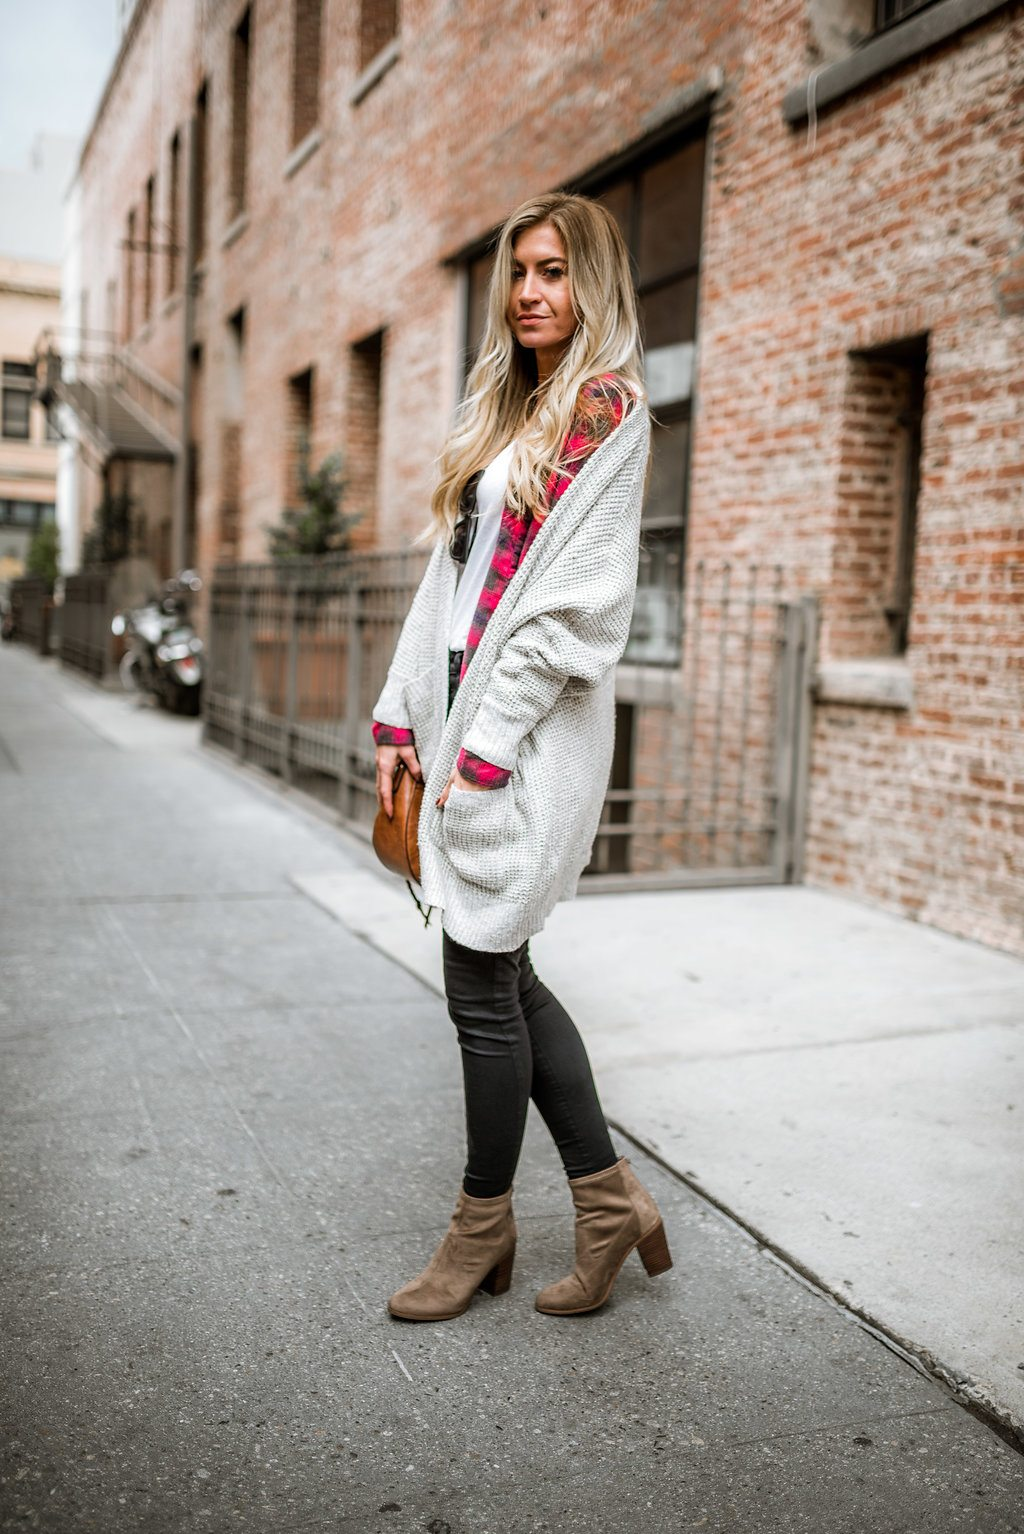 Cozy fall plaid + oversized cardigan